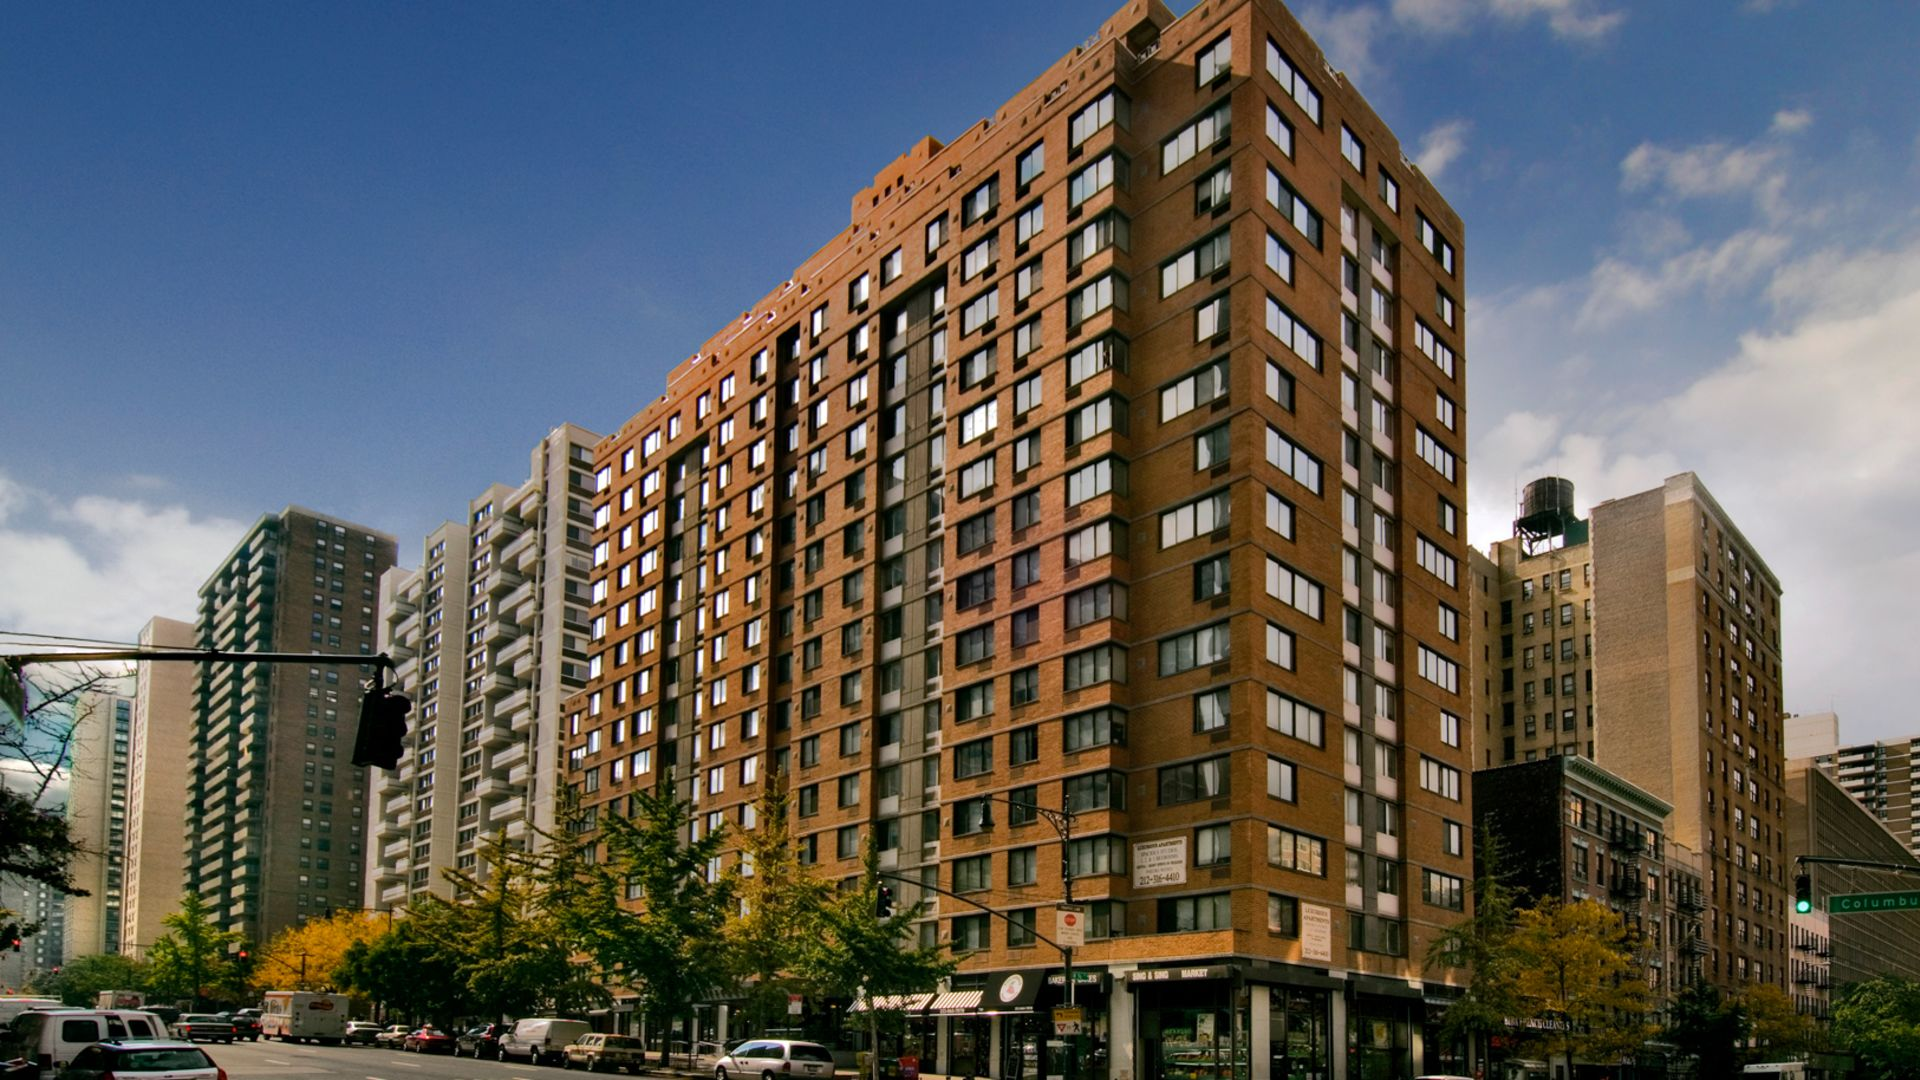 The westmont apartments in upper west side 730 columbus for Manhattan west village apartments